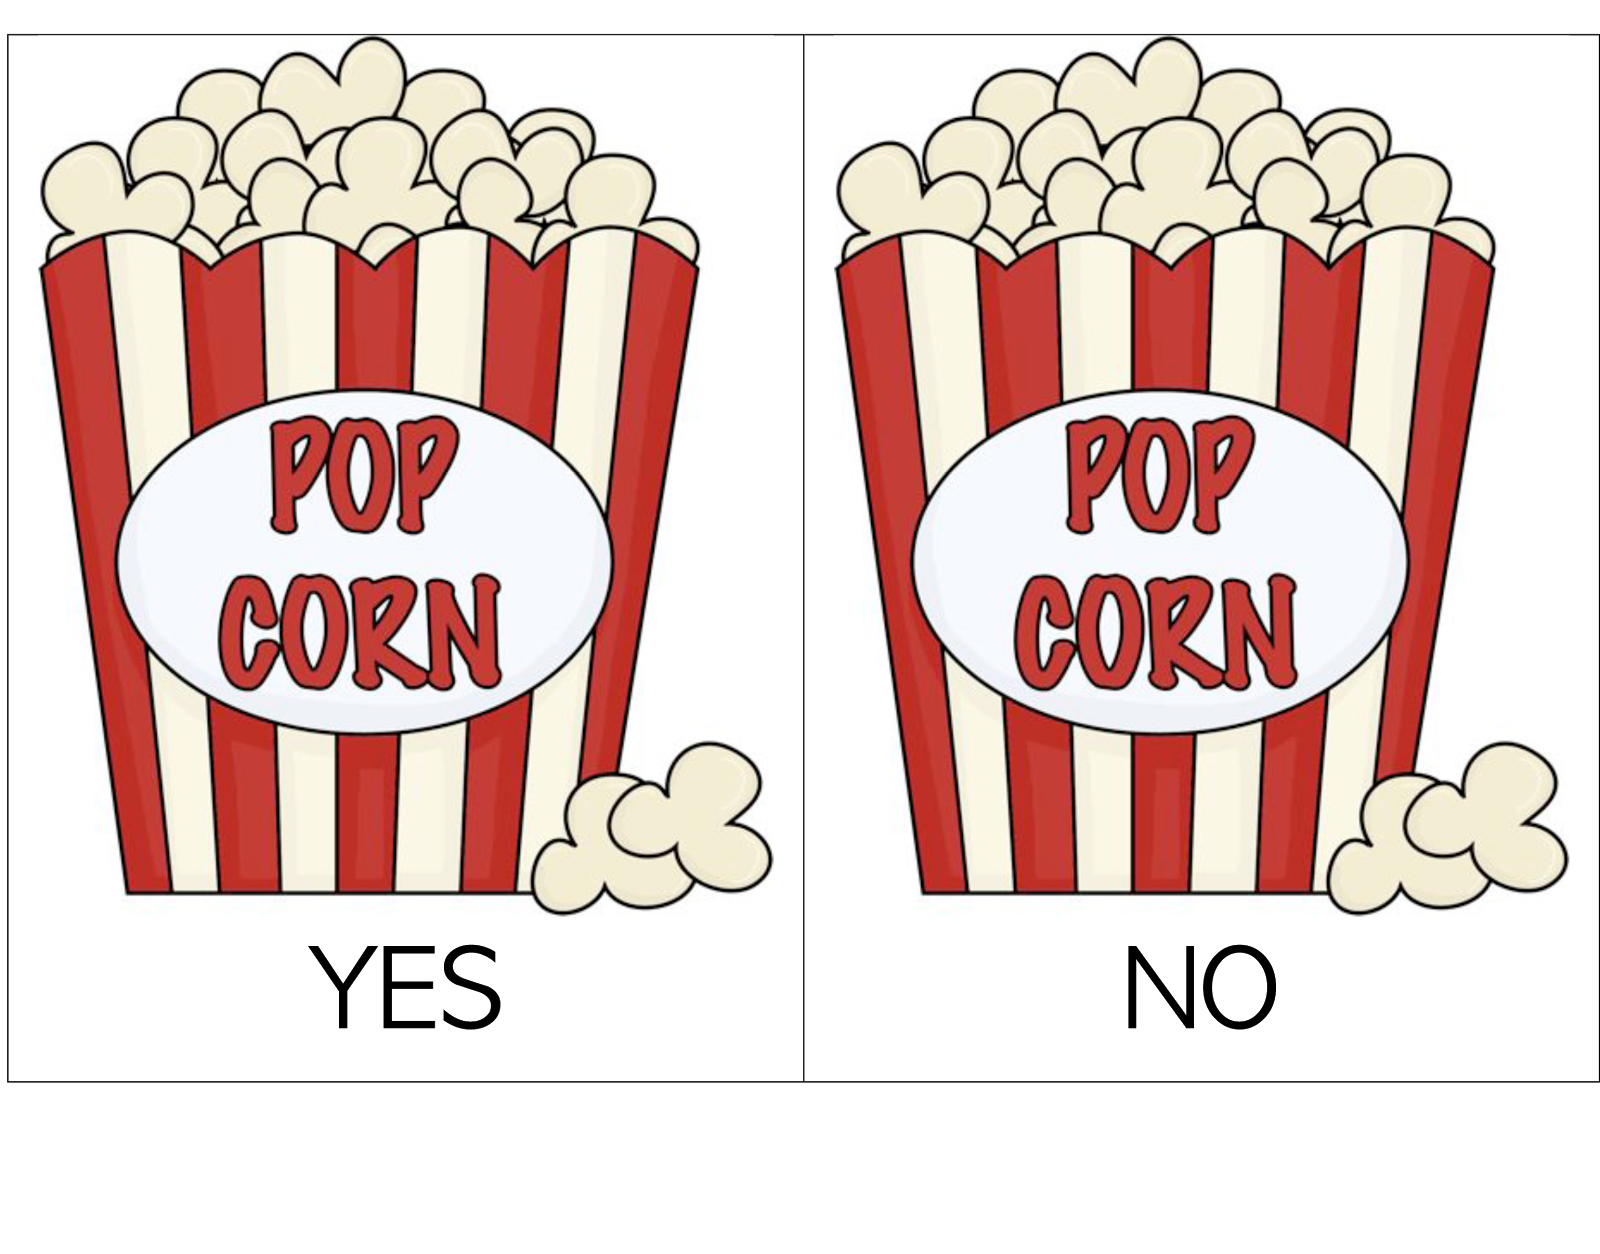 Popcorn Box Clip Art Yes No Popcorn Containers